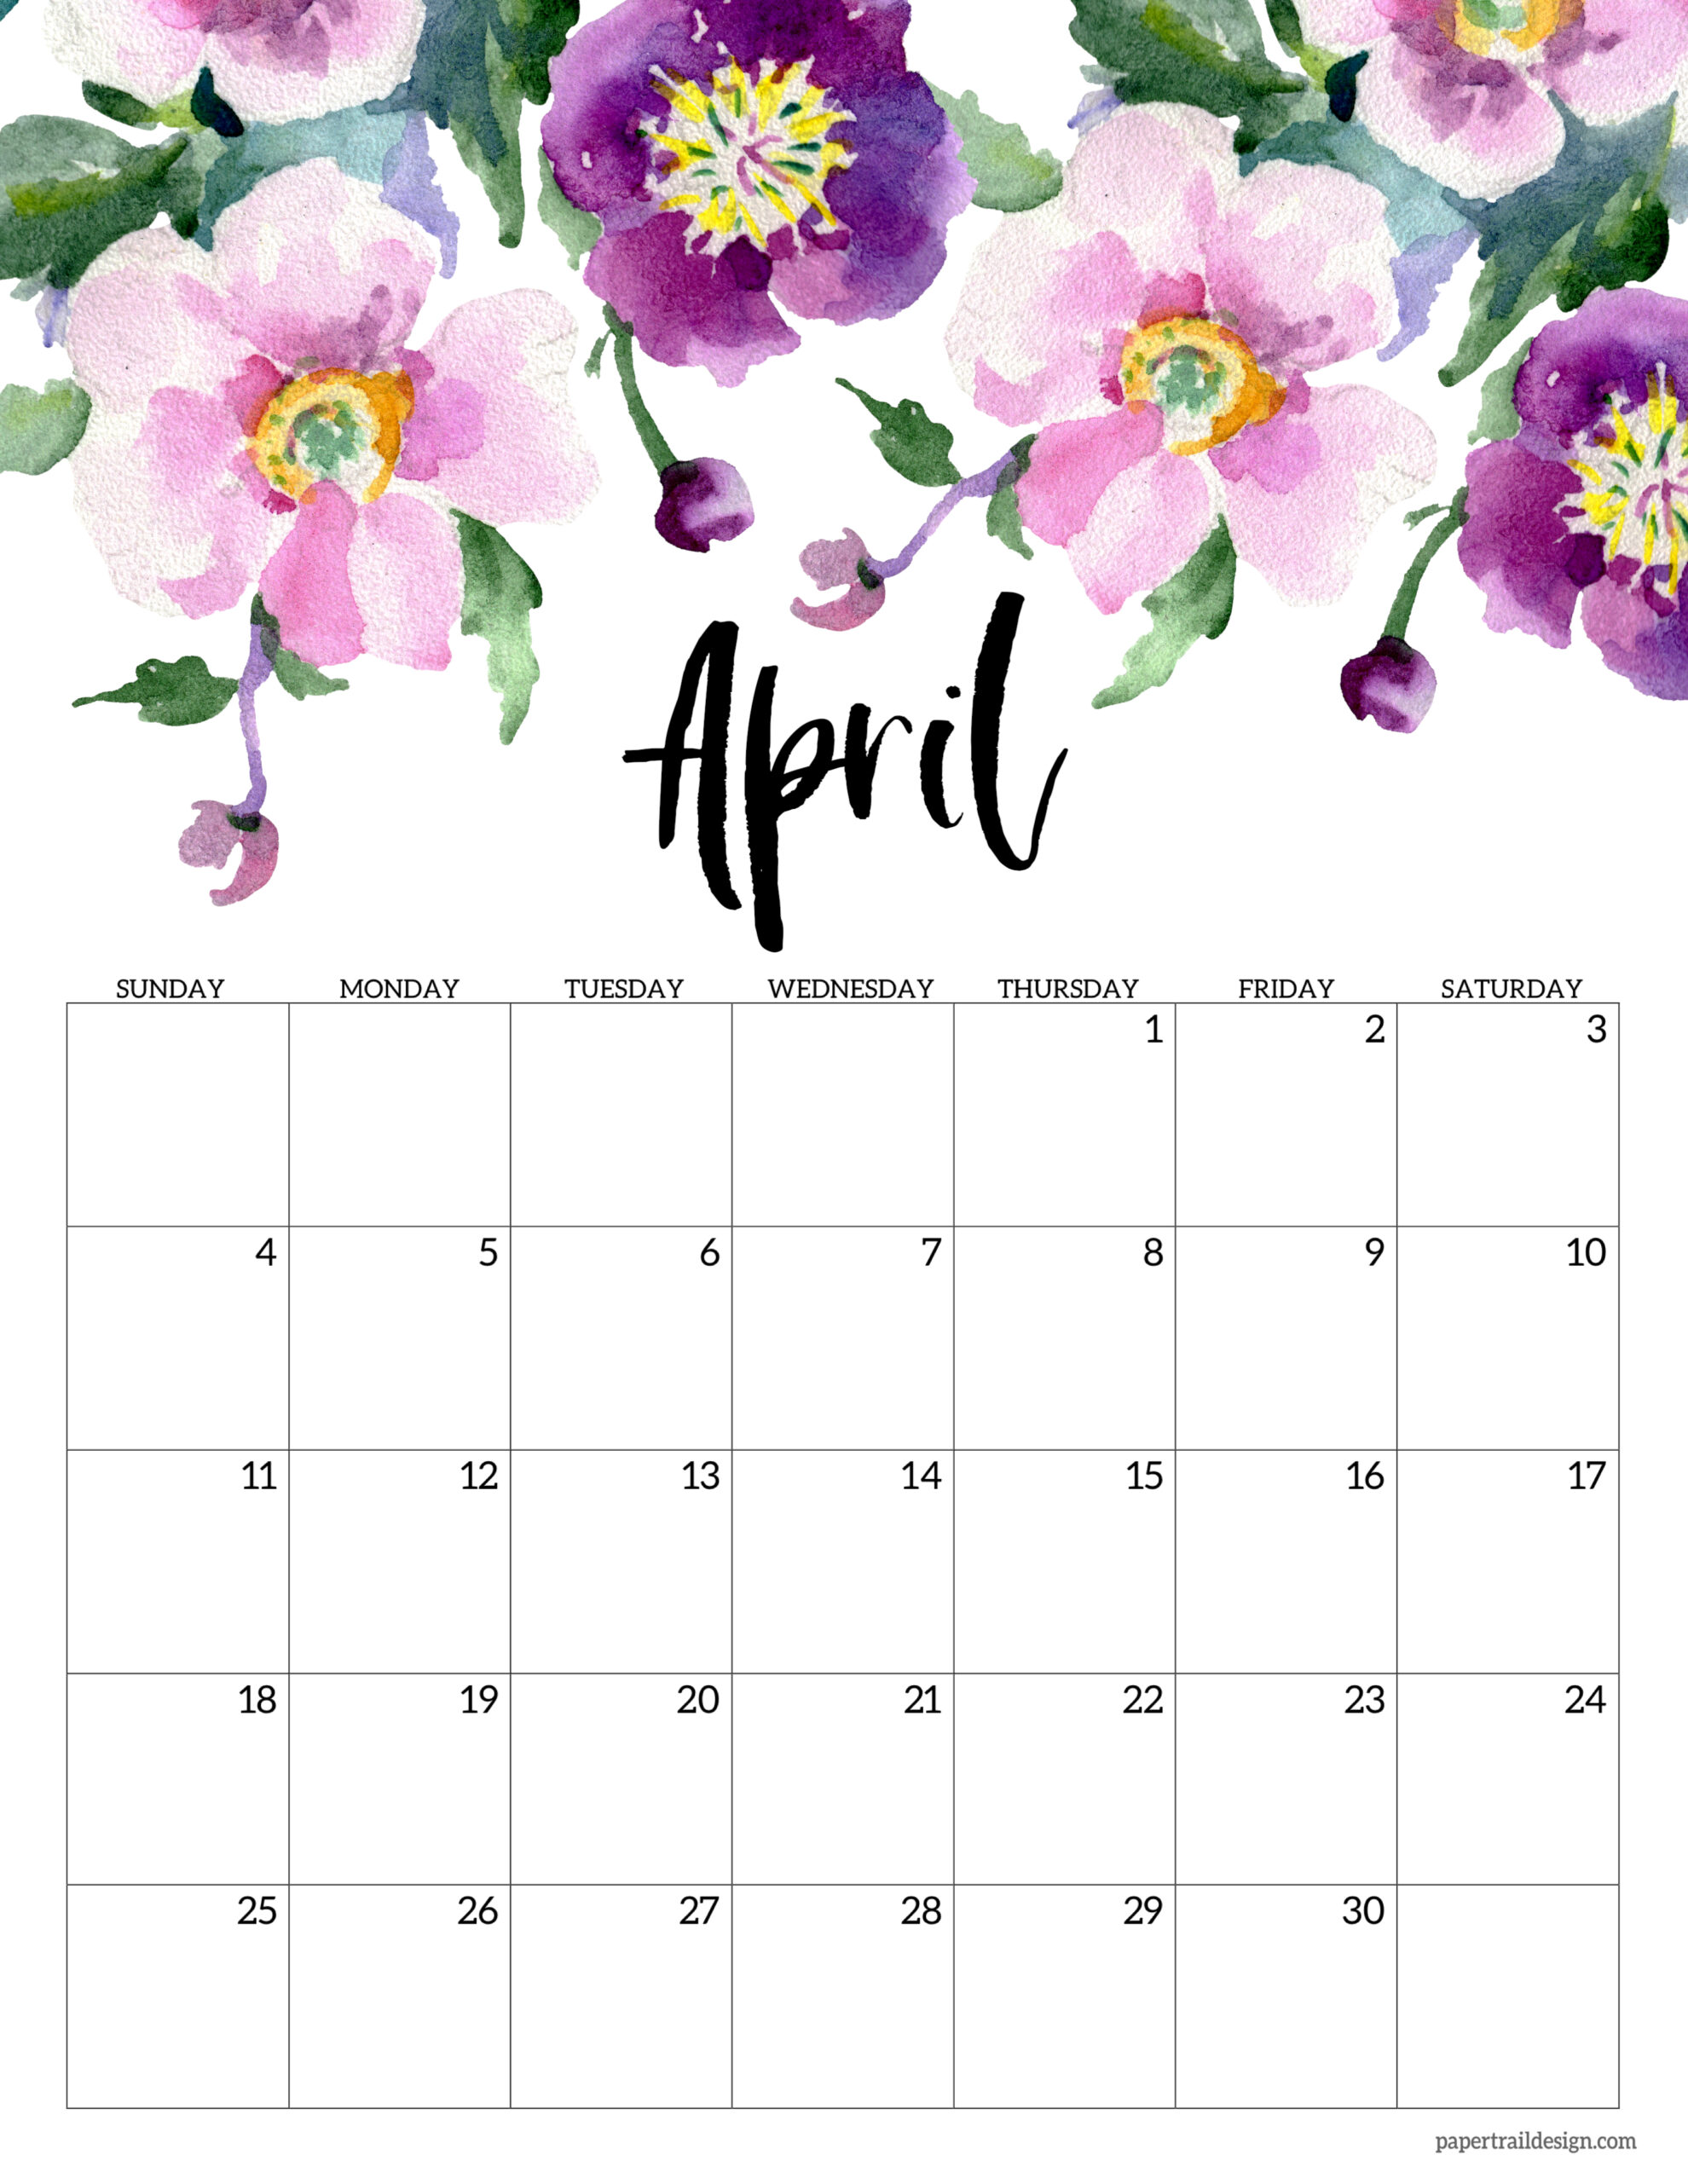 By sally wiener grotta 25 march 2021 we tested the best photo calendars services so that you can pick the righ. Free Printable 2021 Floral Calendar | Paper Trail Design